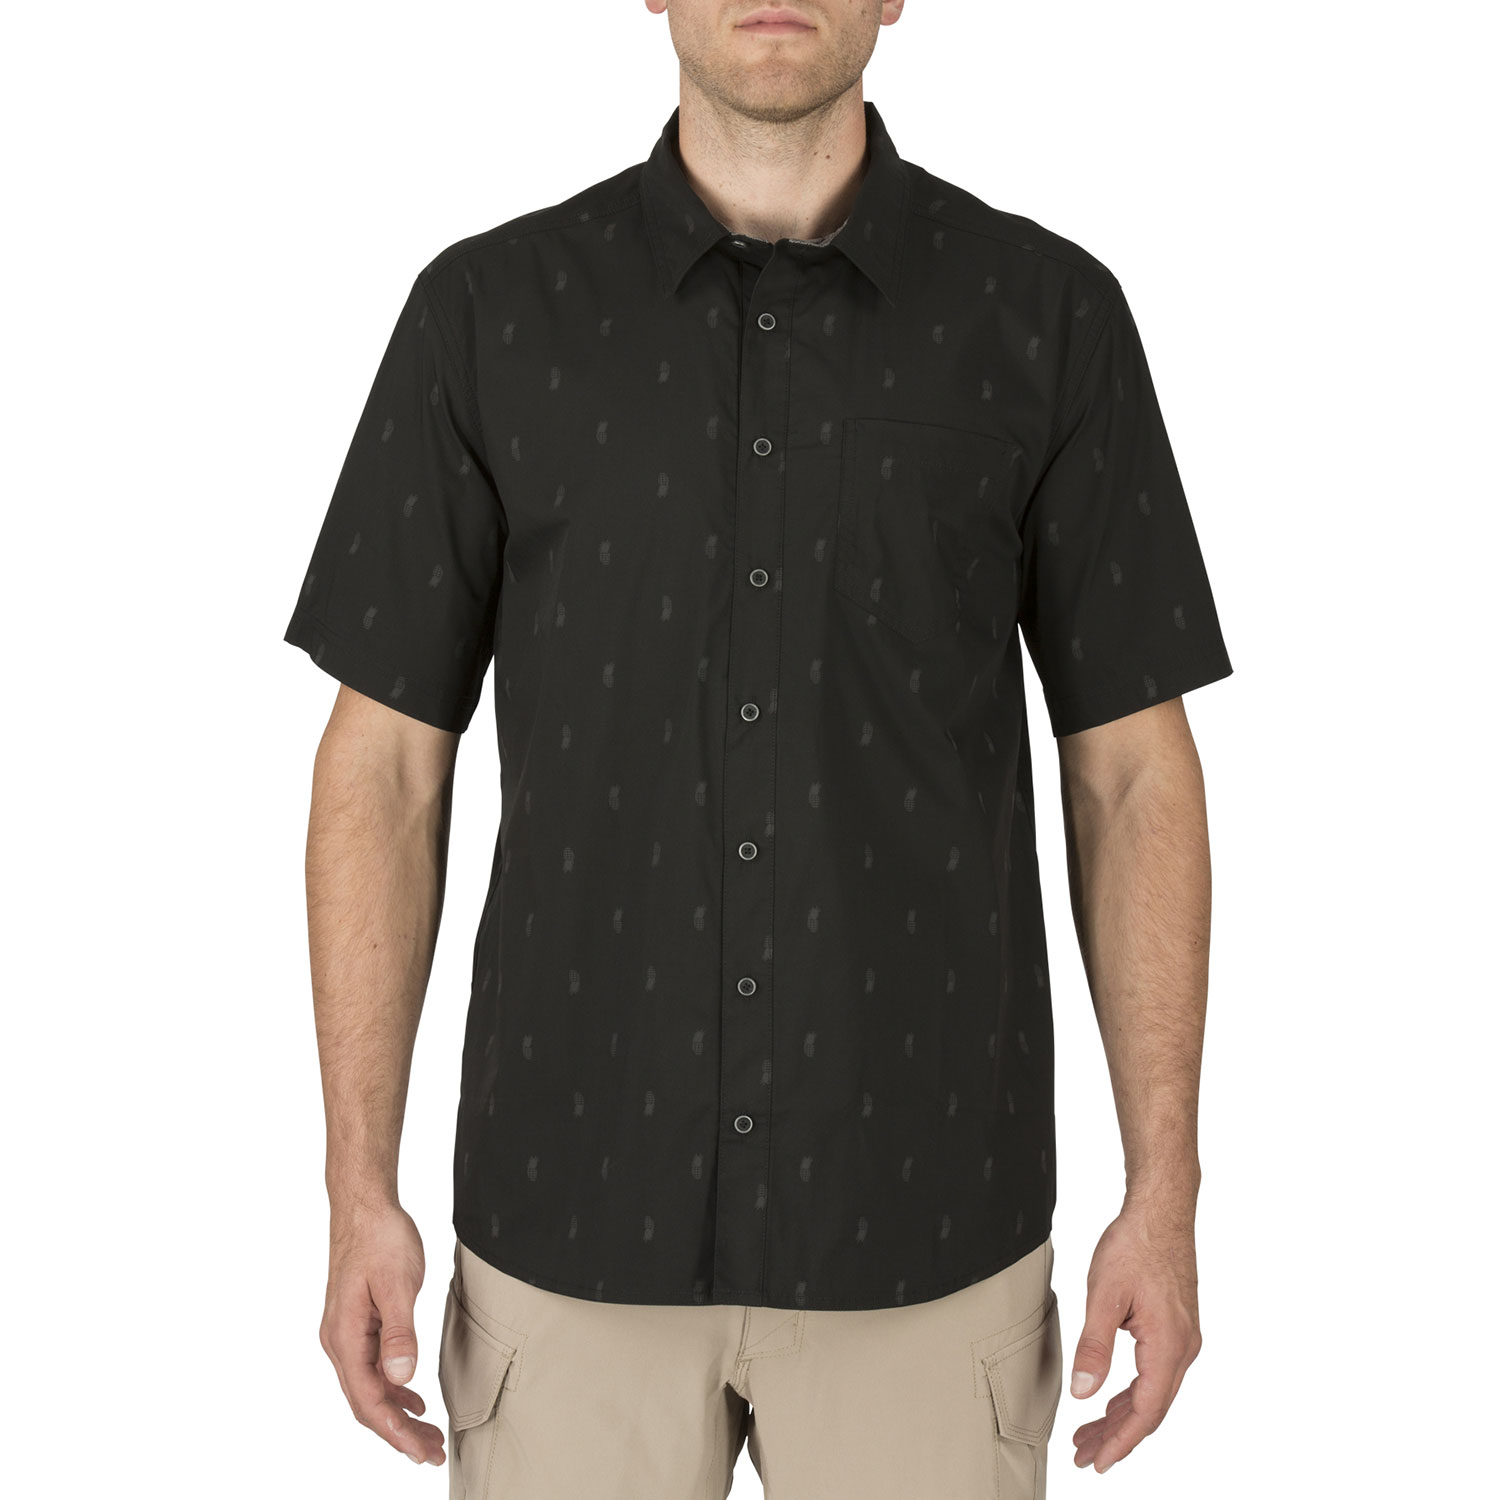 5.11 Tactical Five-O Covert Short Sleeve Shirt